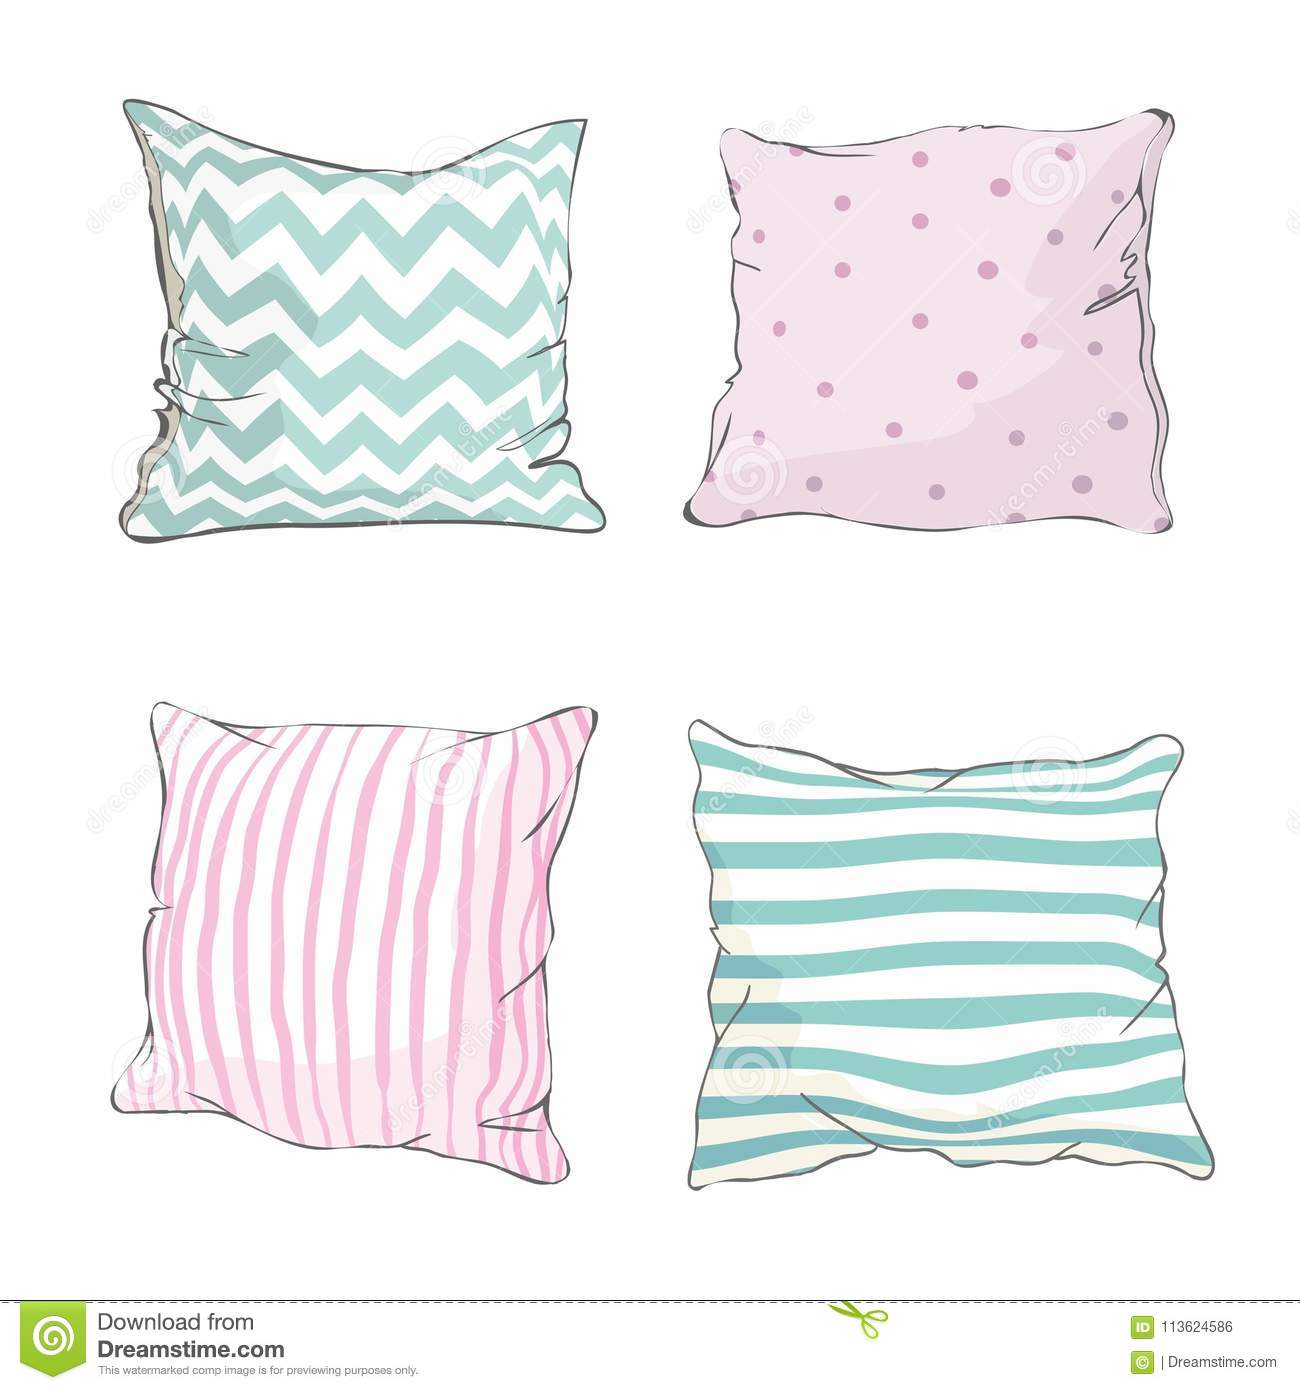 https www dreamstime com sketch vector illustration pillow art pillow isolated white pillow bed pillow bed comfort design domestic fabric feather image113624586